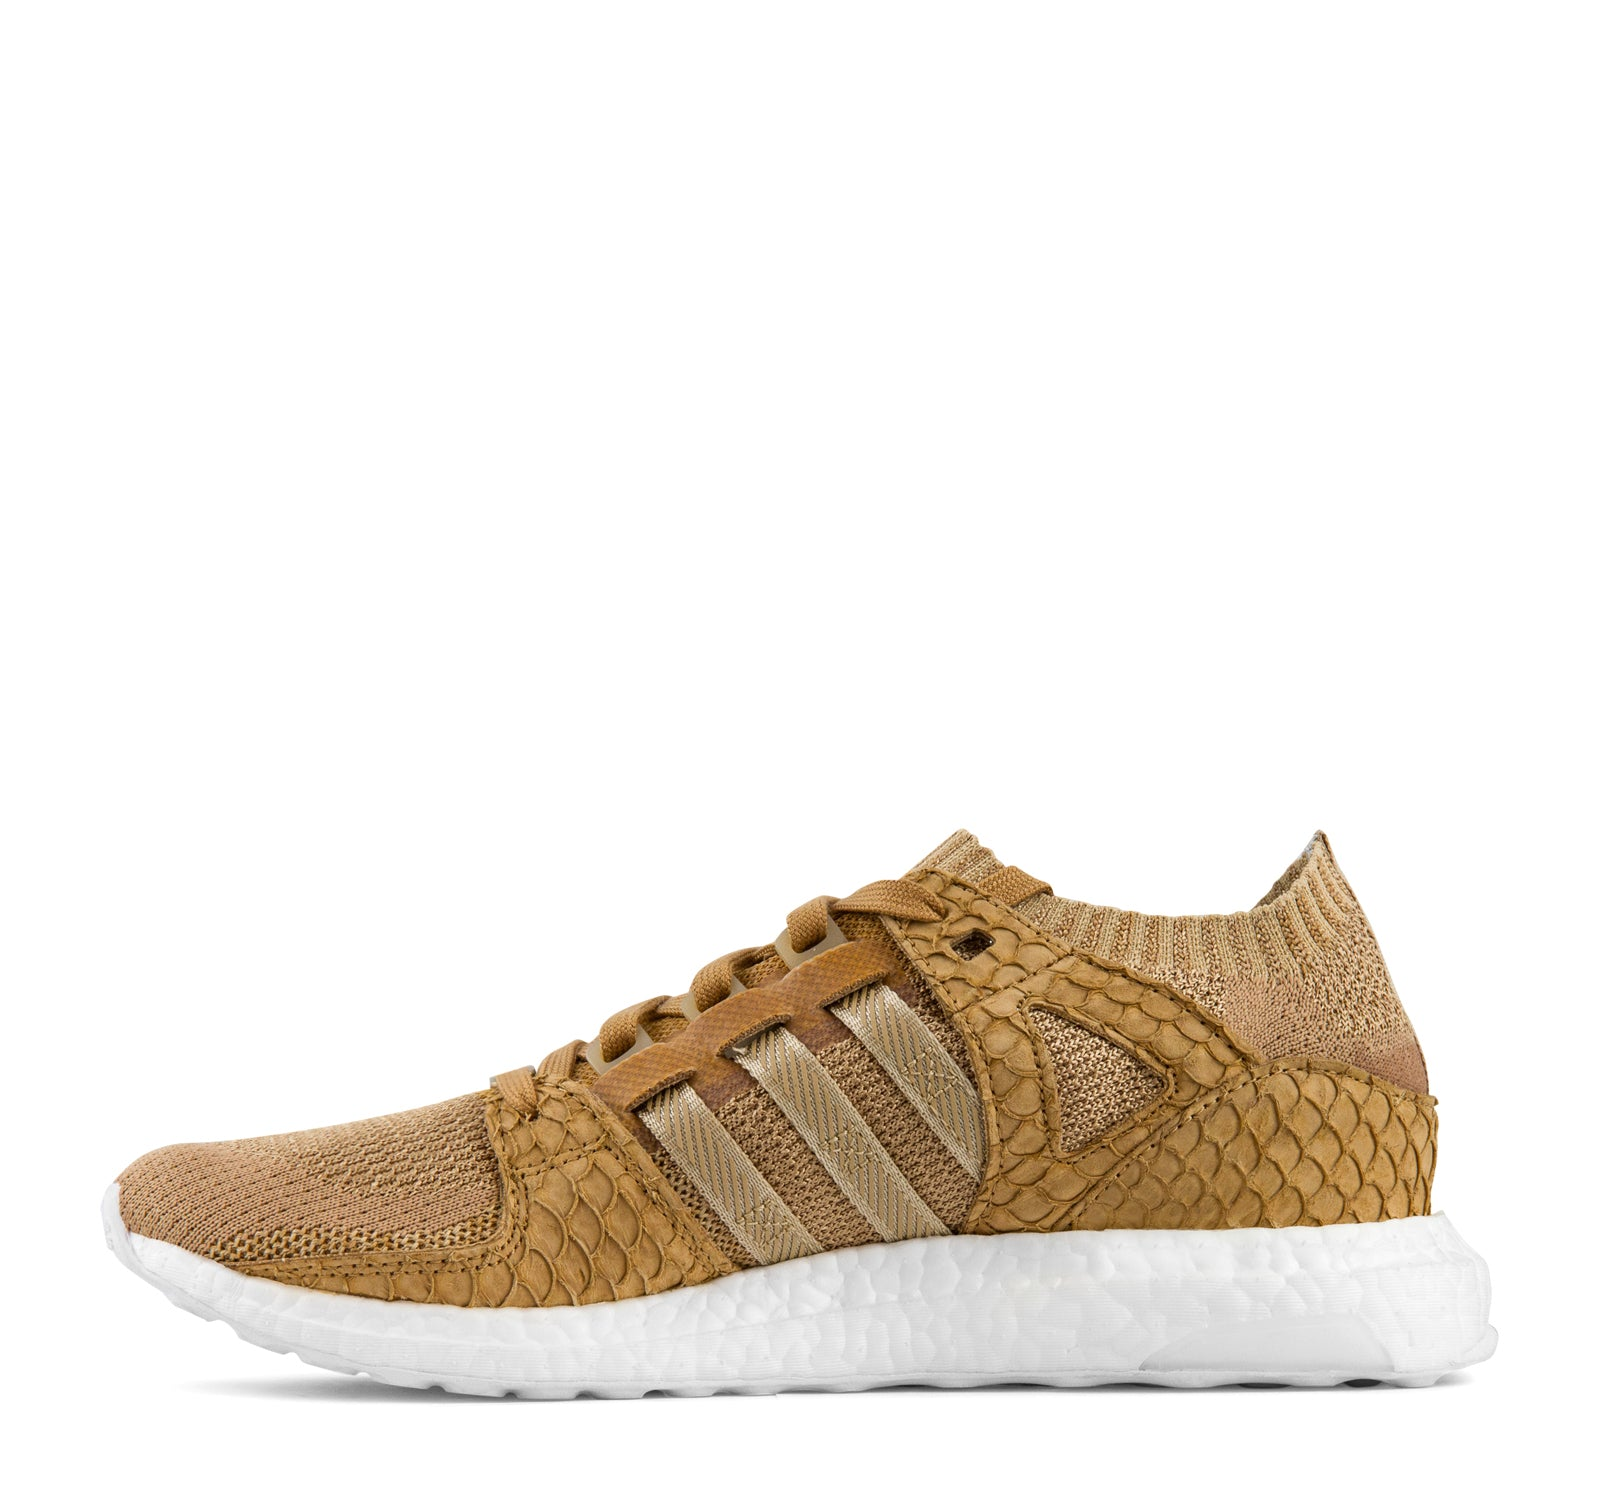 online store 45278 d745f ... Adidas EQT Support Ultra PK x Pusha T DB0181 Mens Sneaker in Brown and  White ...